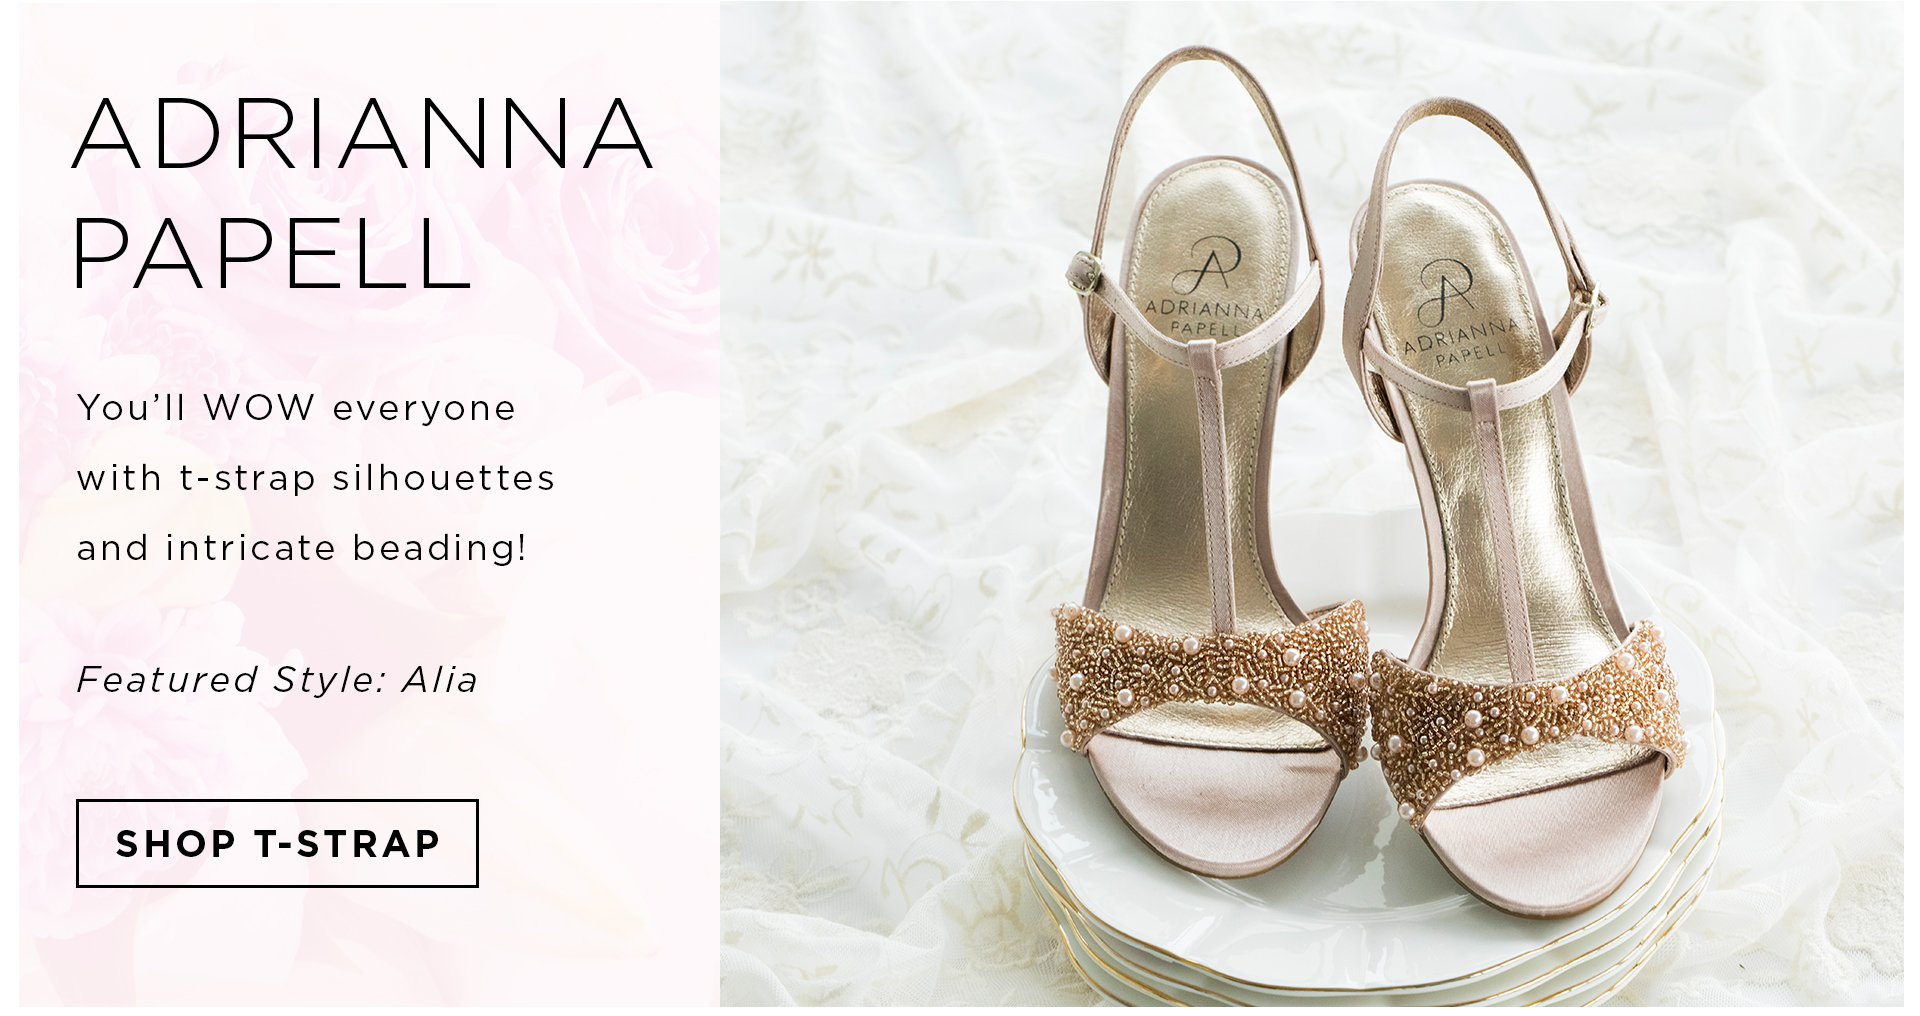 Wedding shoes bridal flats sandals heels more zappos header wedding footwear favorites badgley mischka shop nina adrianna papell junglespirit